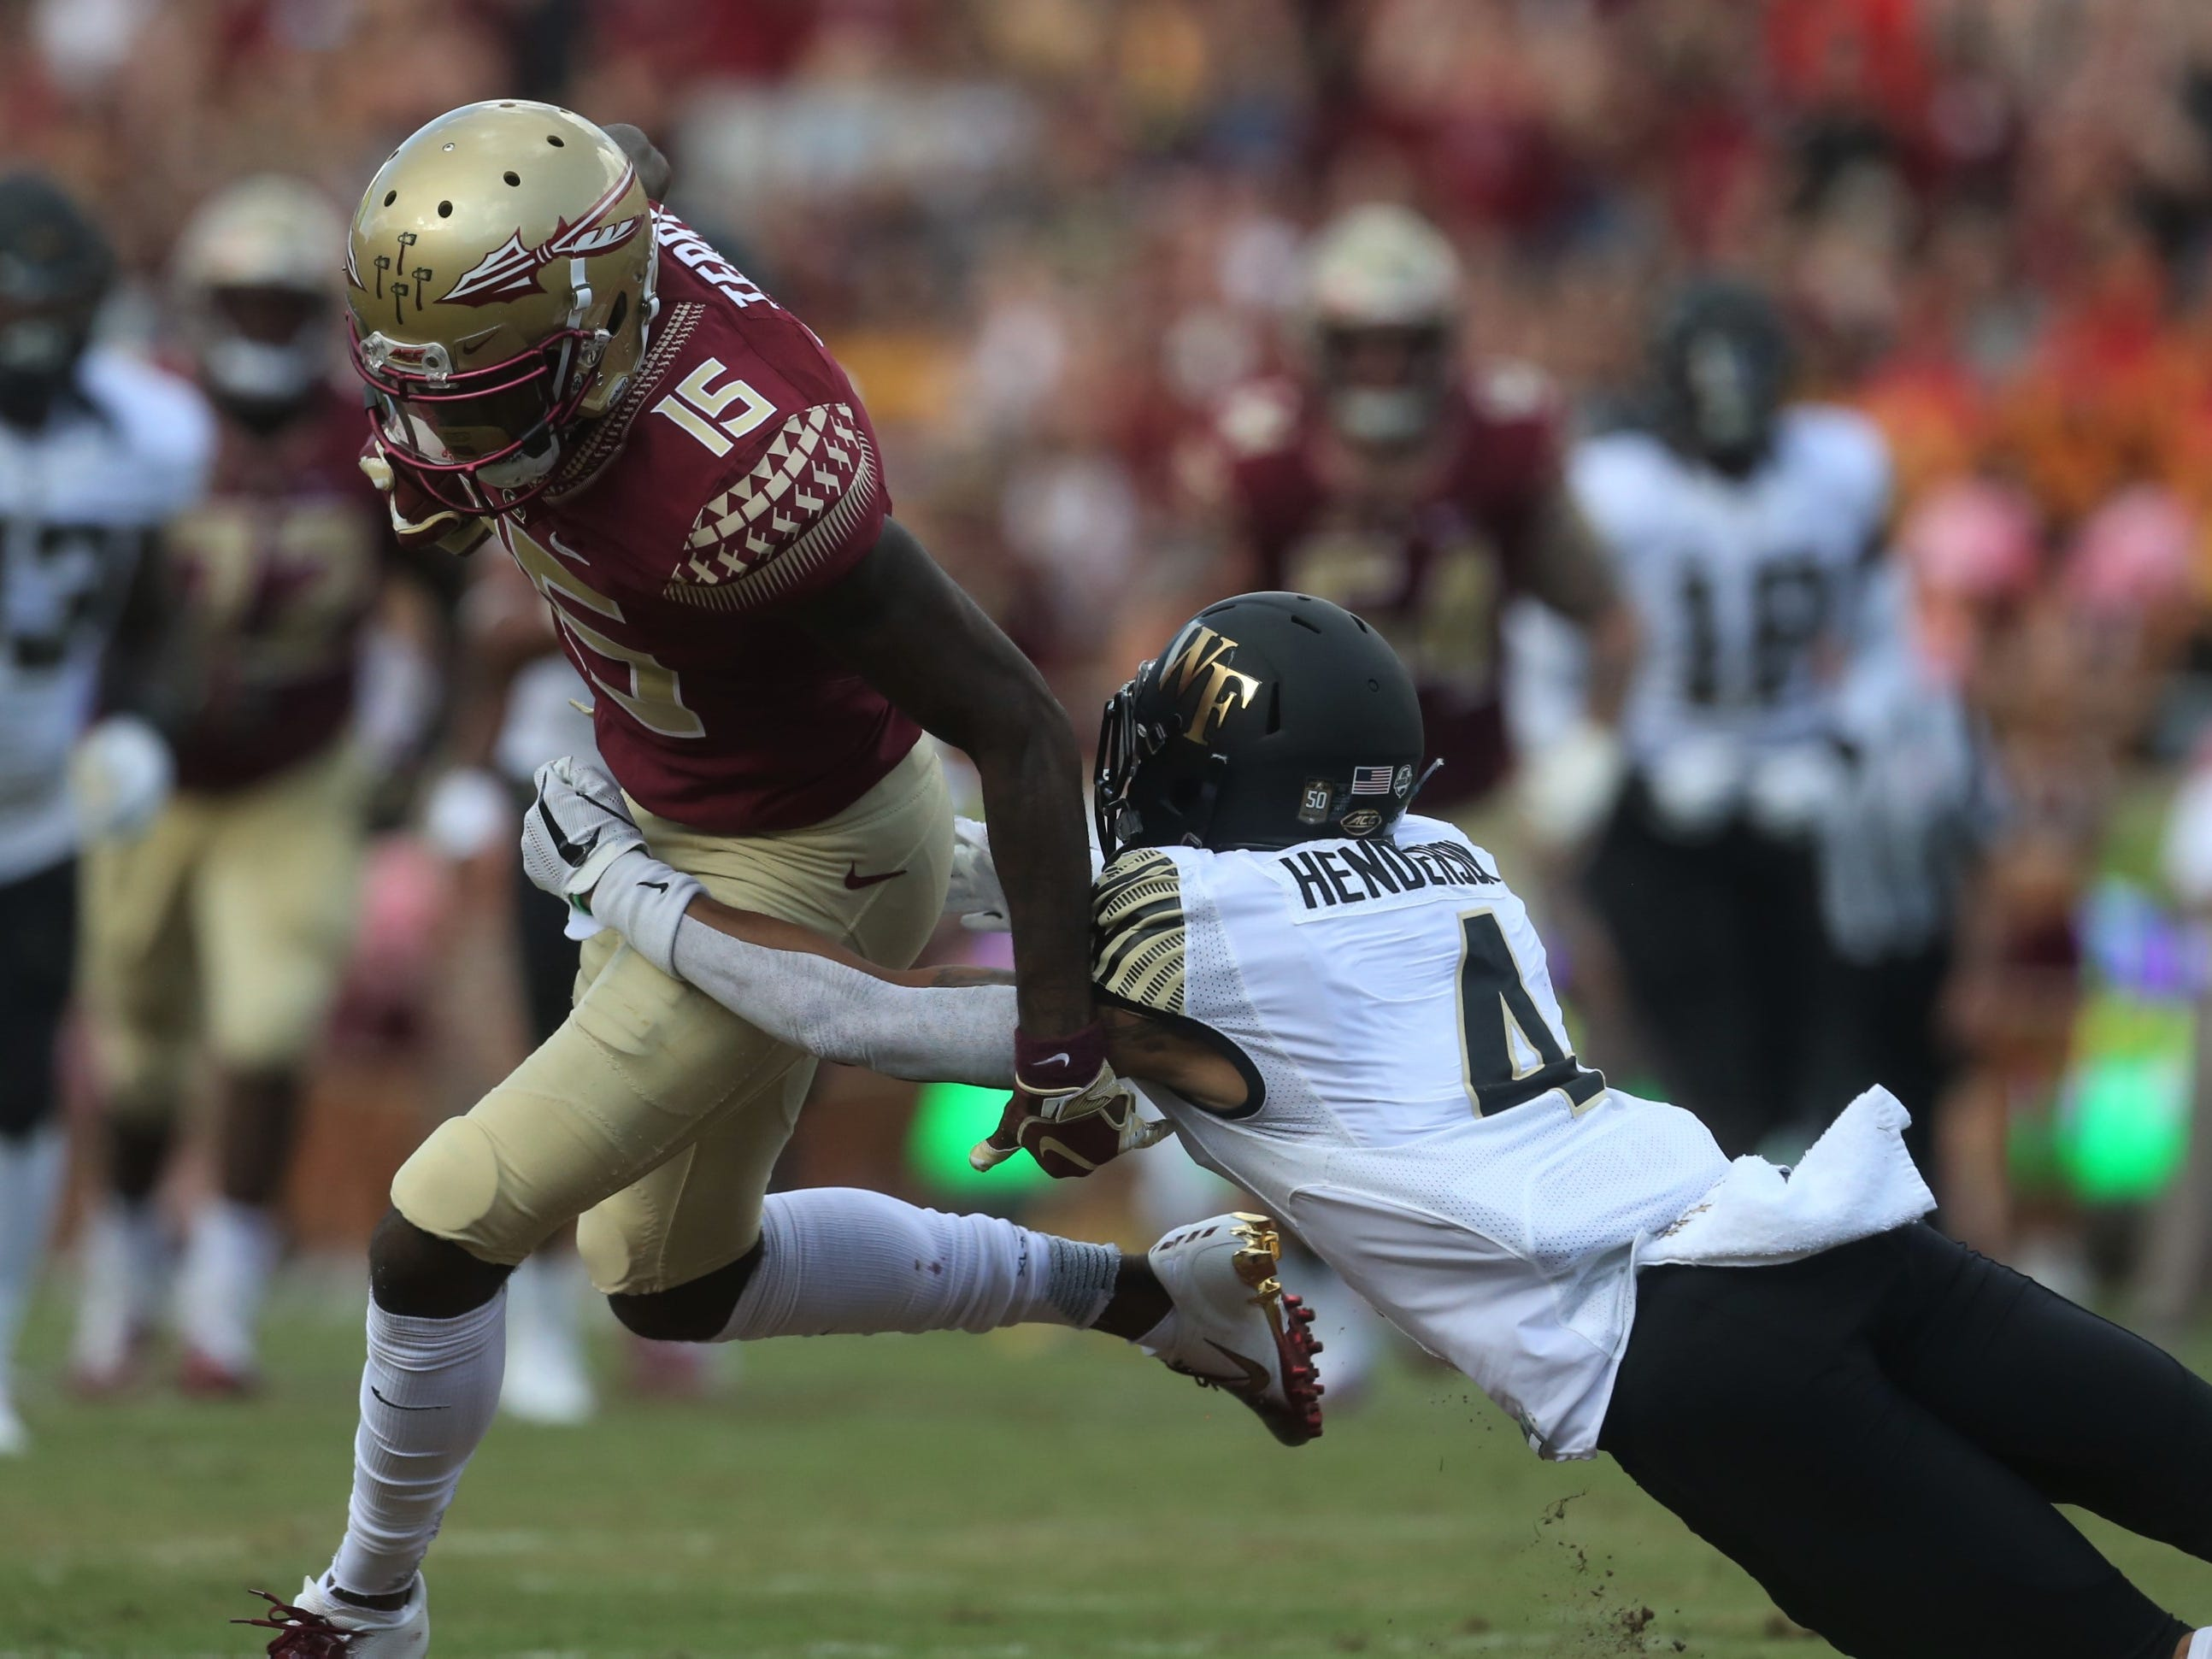 Florida State receiver Tamorrion Terry catches a pass and breaks towards the end zone as Wake Forest defensive back Amari Henderson hangs on for dear life during a game at Doak Campbell Stadium on Saturday, Oct. 20, 2018.